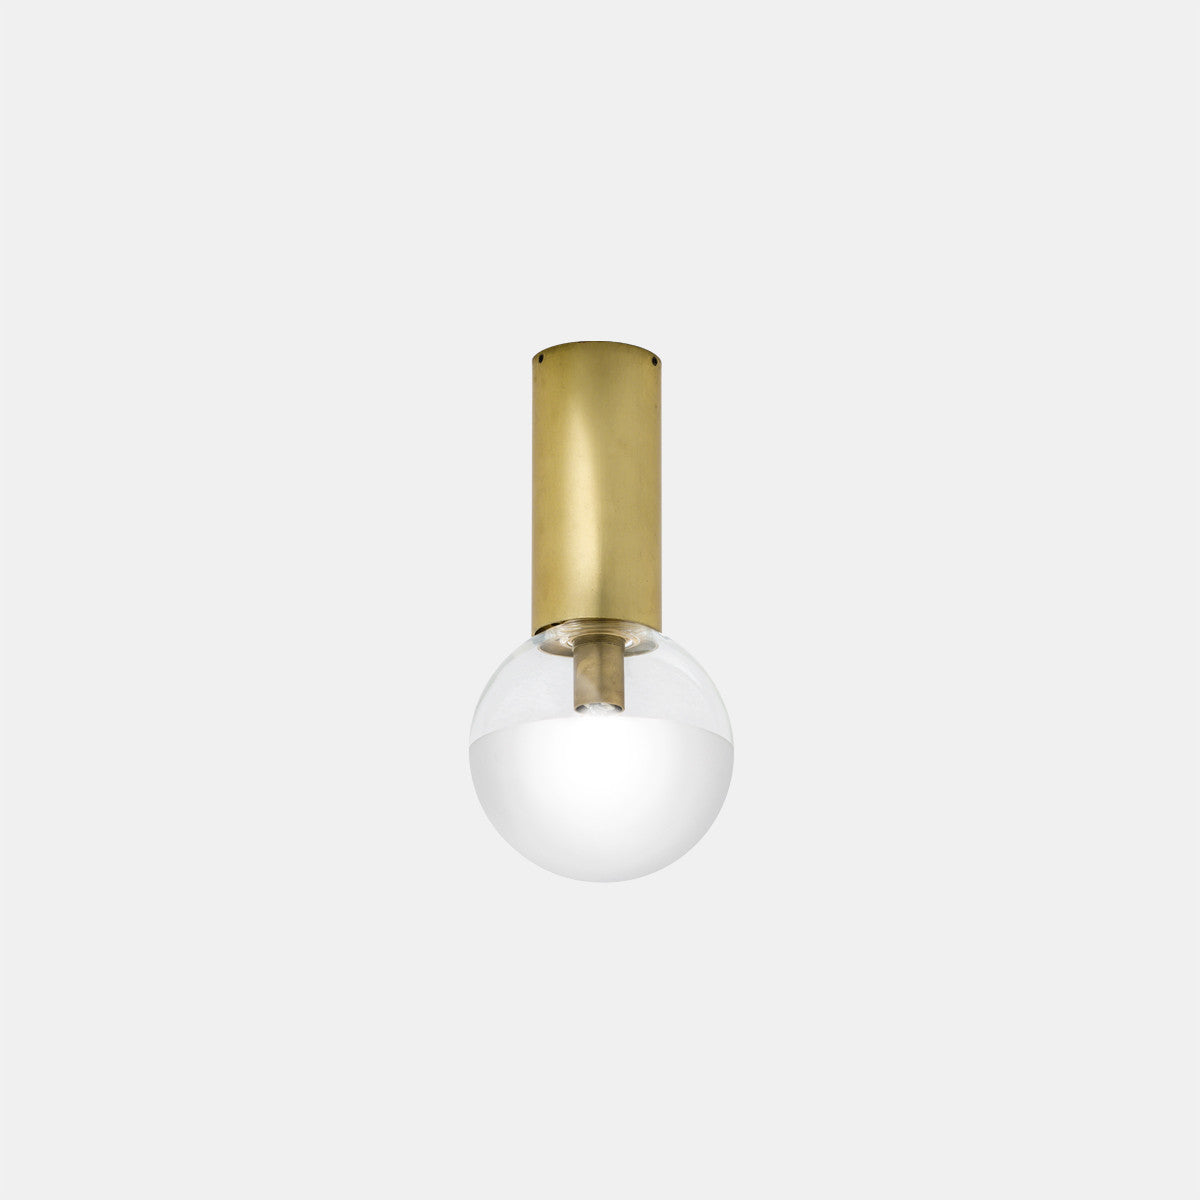 MOLECULE Ceiling Light 275.01 | touchGOODS